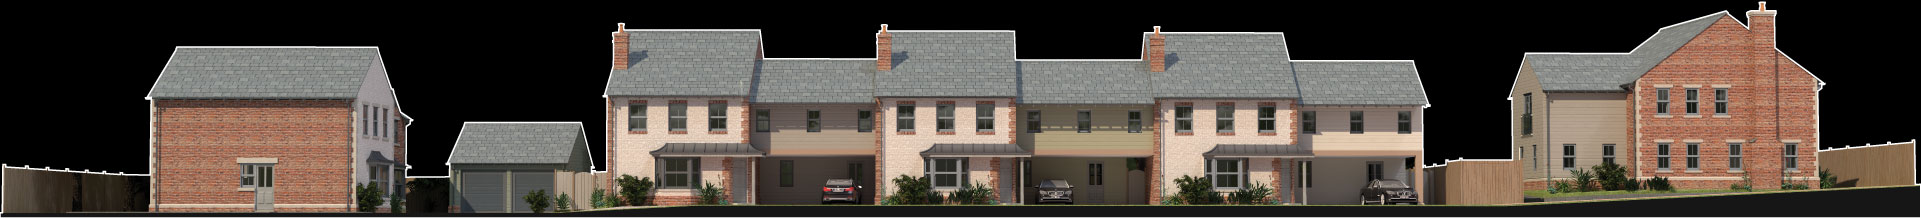 Russon Campbell Developments Athena Way Oundle Image